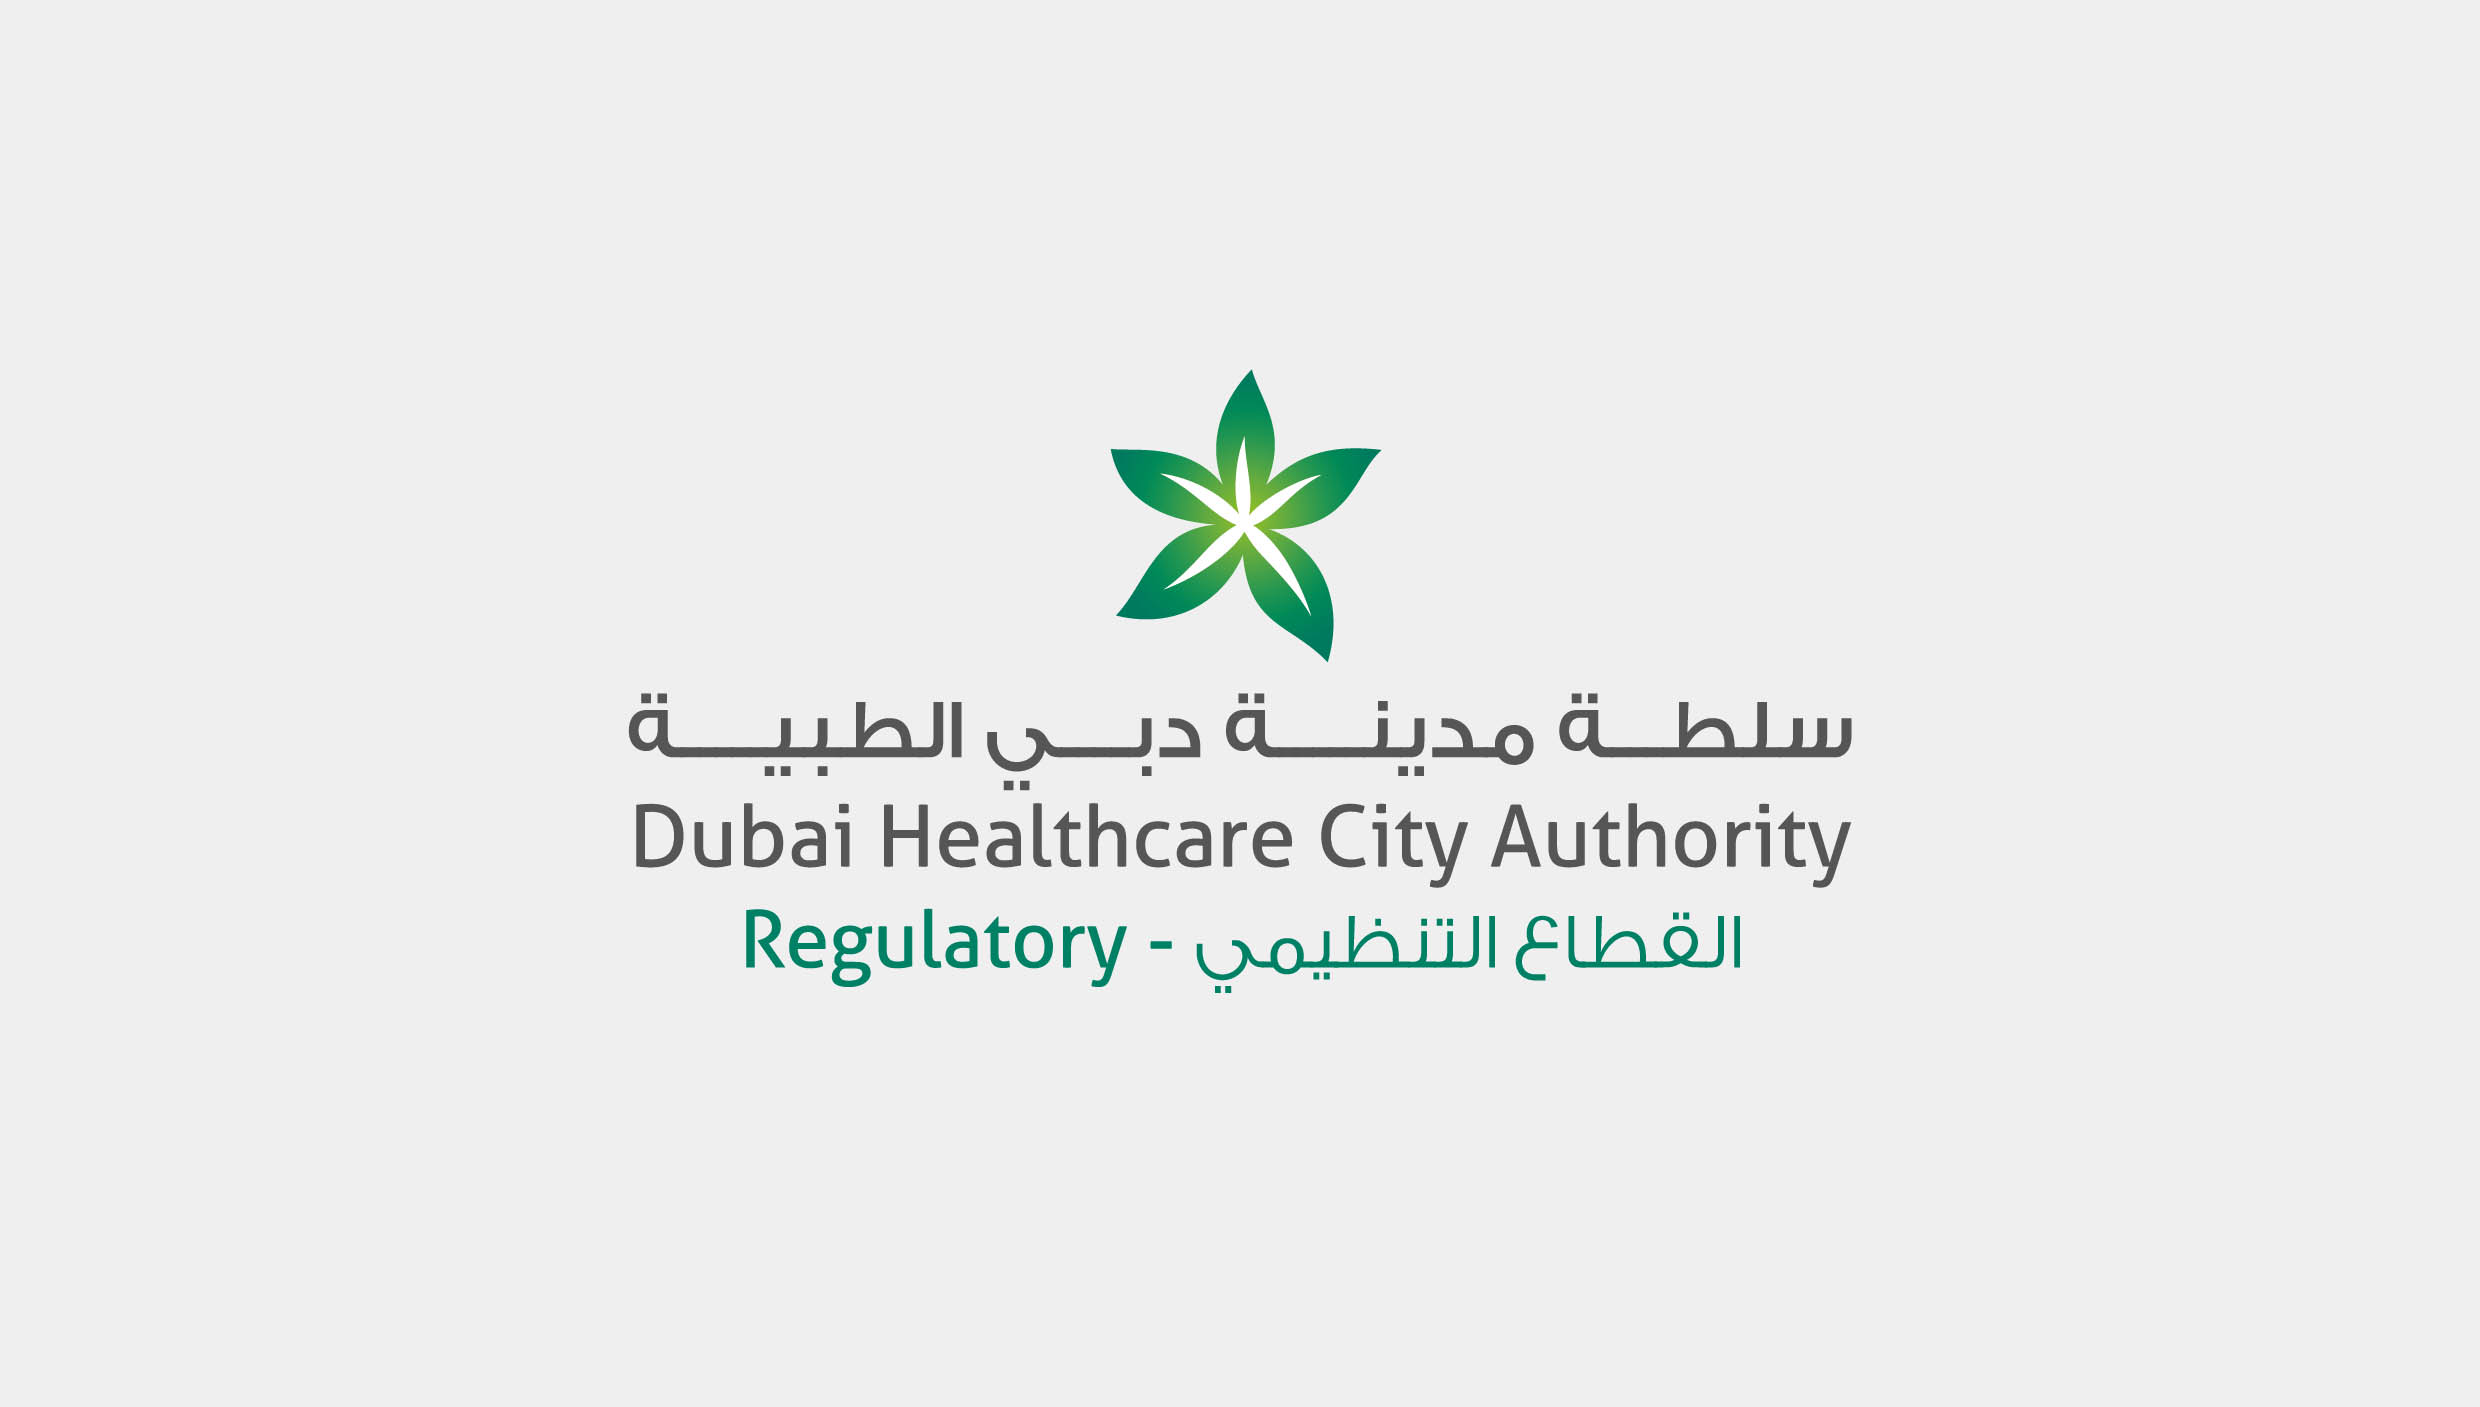 UAE Ministry of Health and Prevention alert recall of products